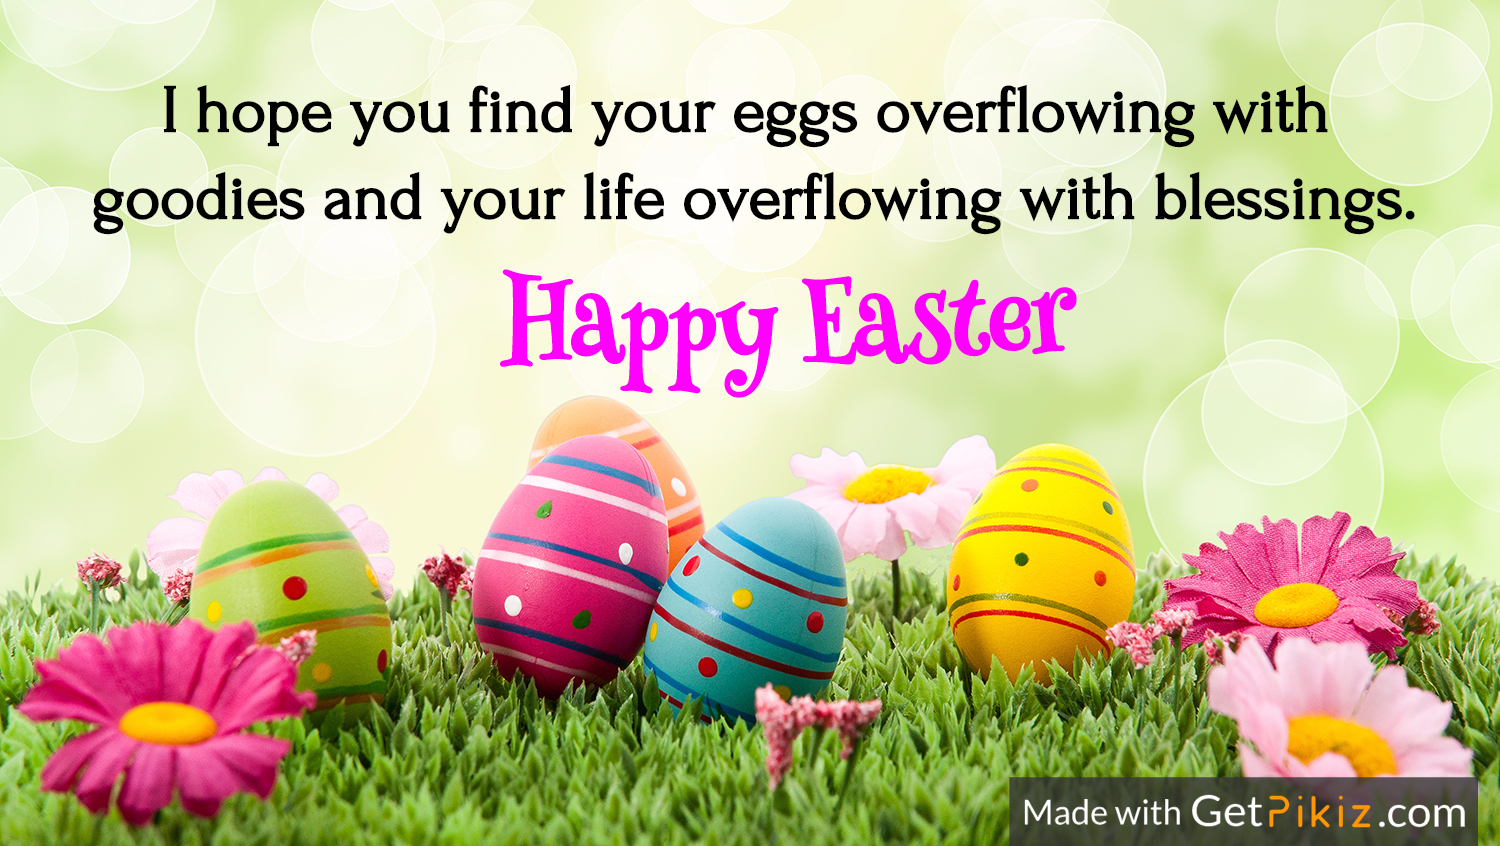 I hope you find your eggs overflowing with  goodies and your life overflowing with blessings. Happy Easter